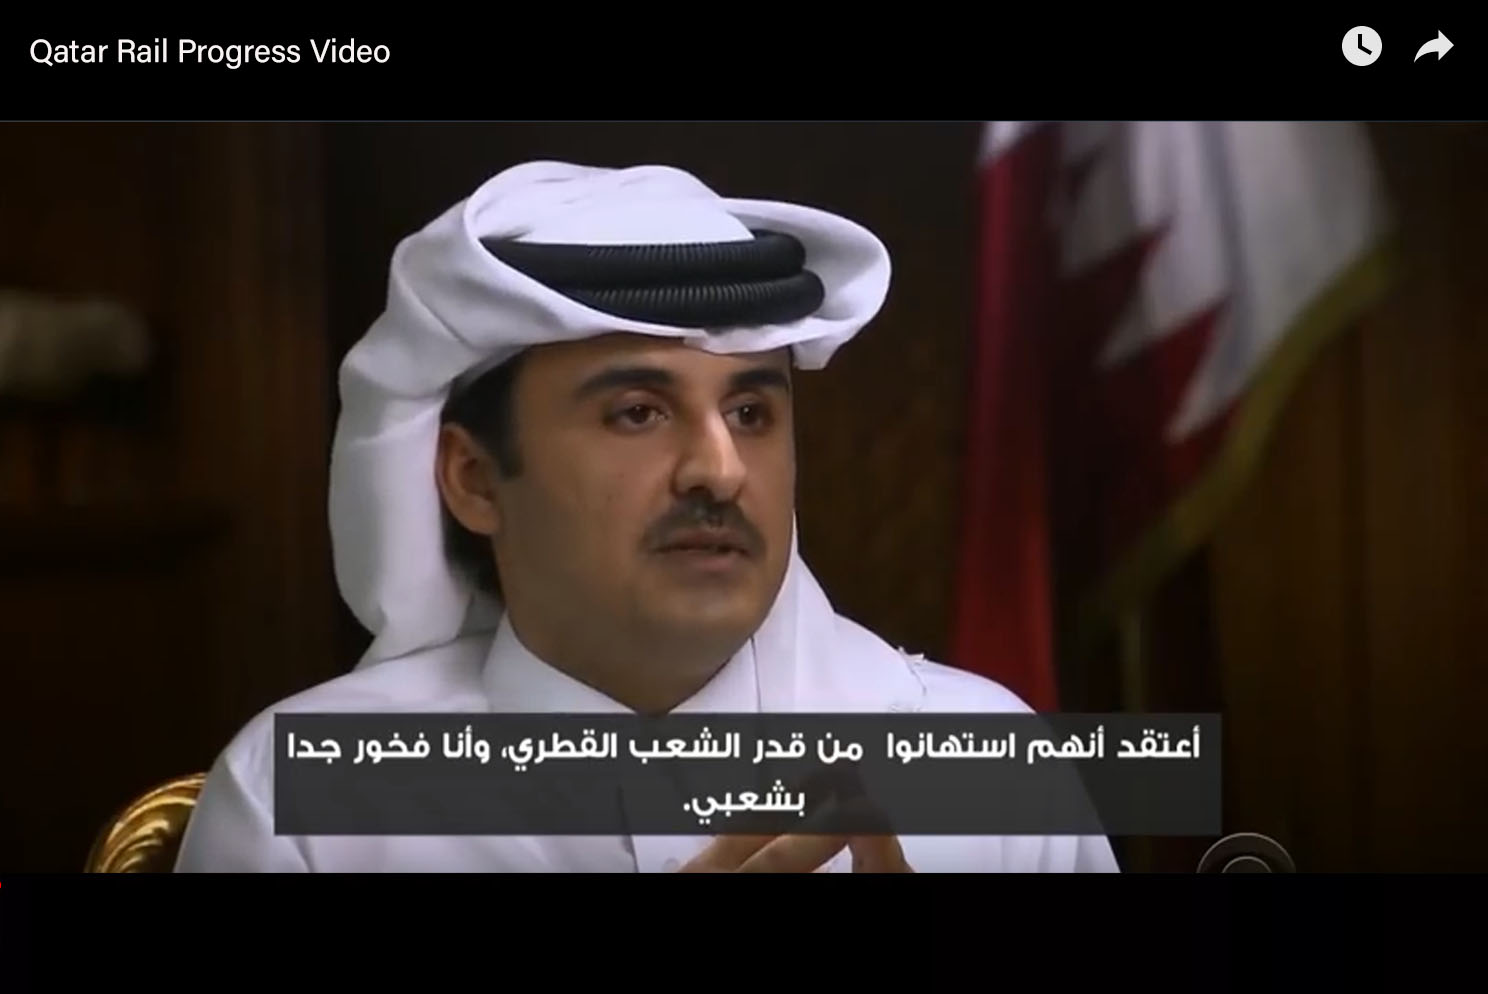 Qatar Rail's progress Video. Despite all the challenges we face, with strong determination & resilience, we build our country working together to turn the vision of His Highness the Emir into a reality